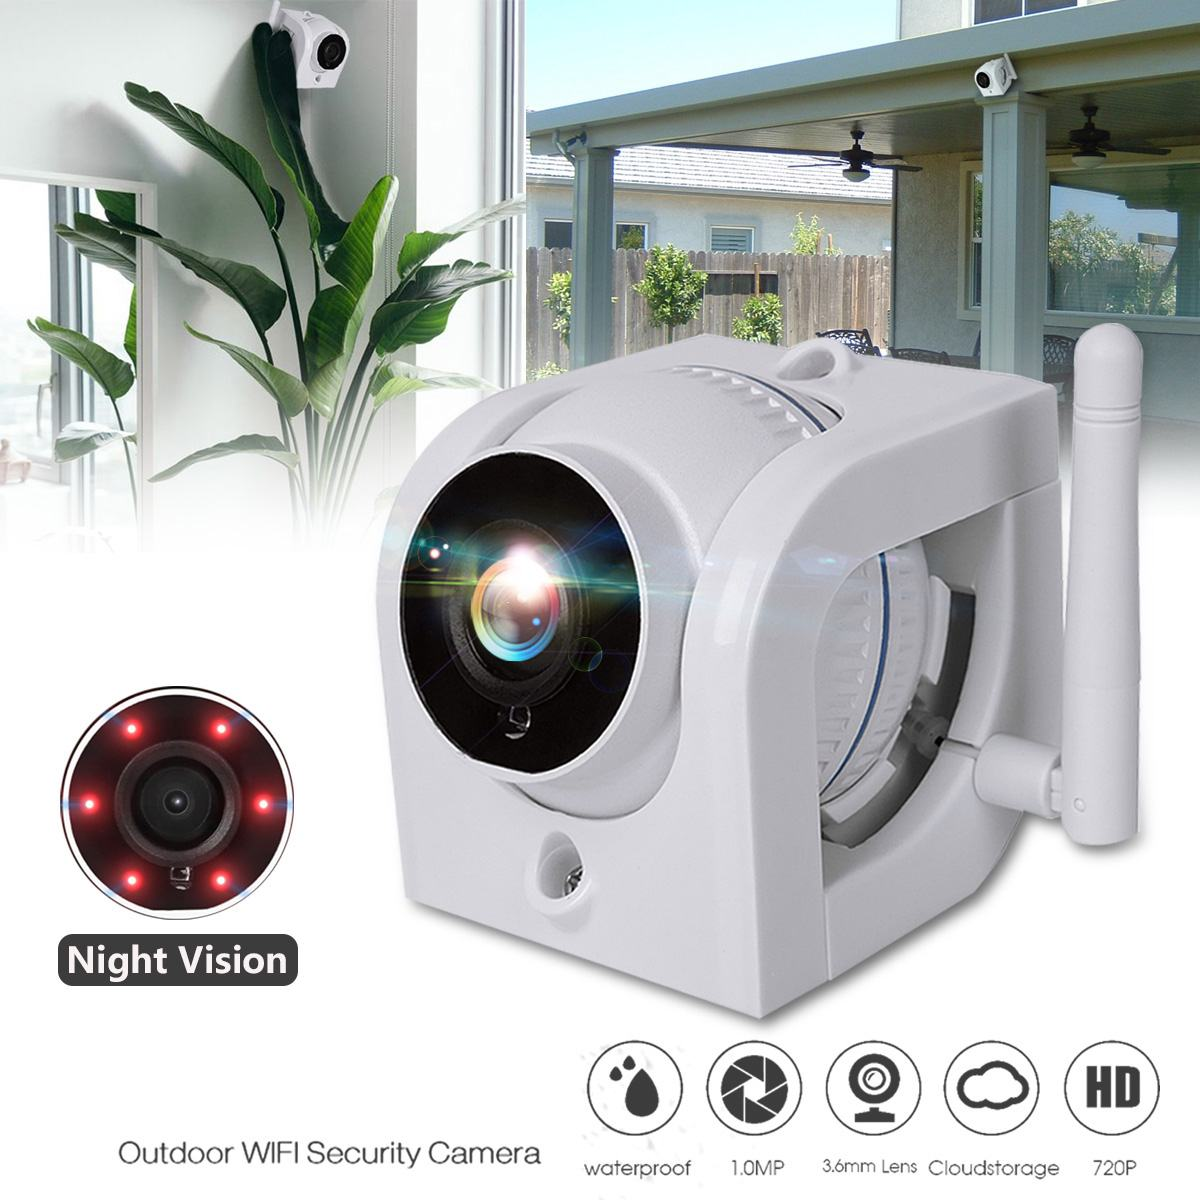 2019 IP Camera Wifi 720P ONVIF Wireless Wired P2P CCTV Outdoor Camera With MiscroSD Card Slot Max 64G Support Amazon Web Service2019 IP Camera Wifi 720P ONVIF Wireless Wired P2P CCTV Outdoor Camera With MiscroSD Card Slot Max 64G Support Amazon Web Service